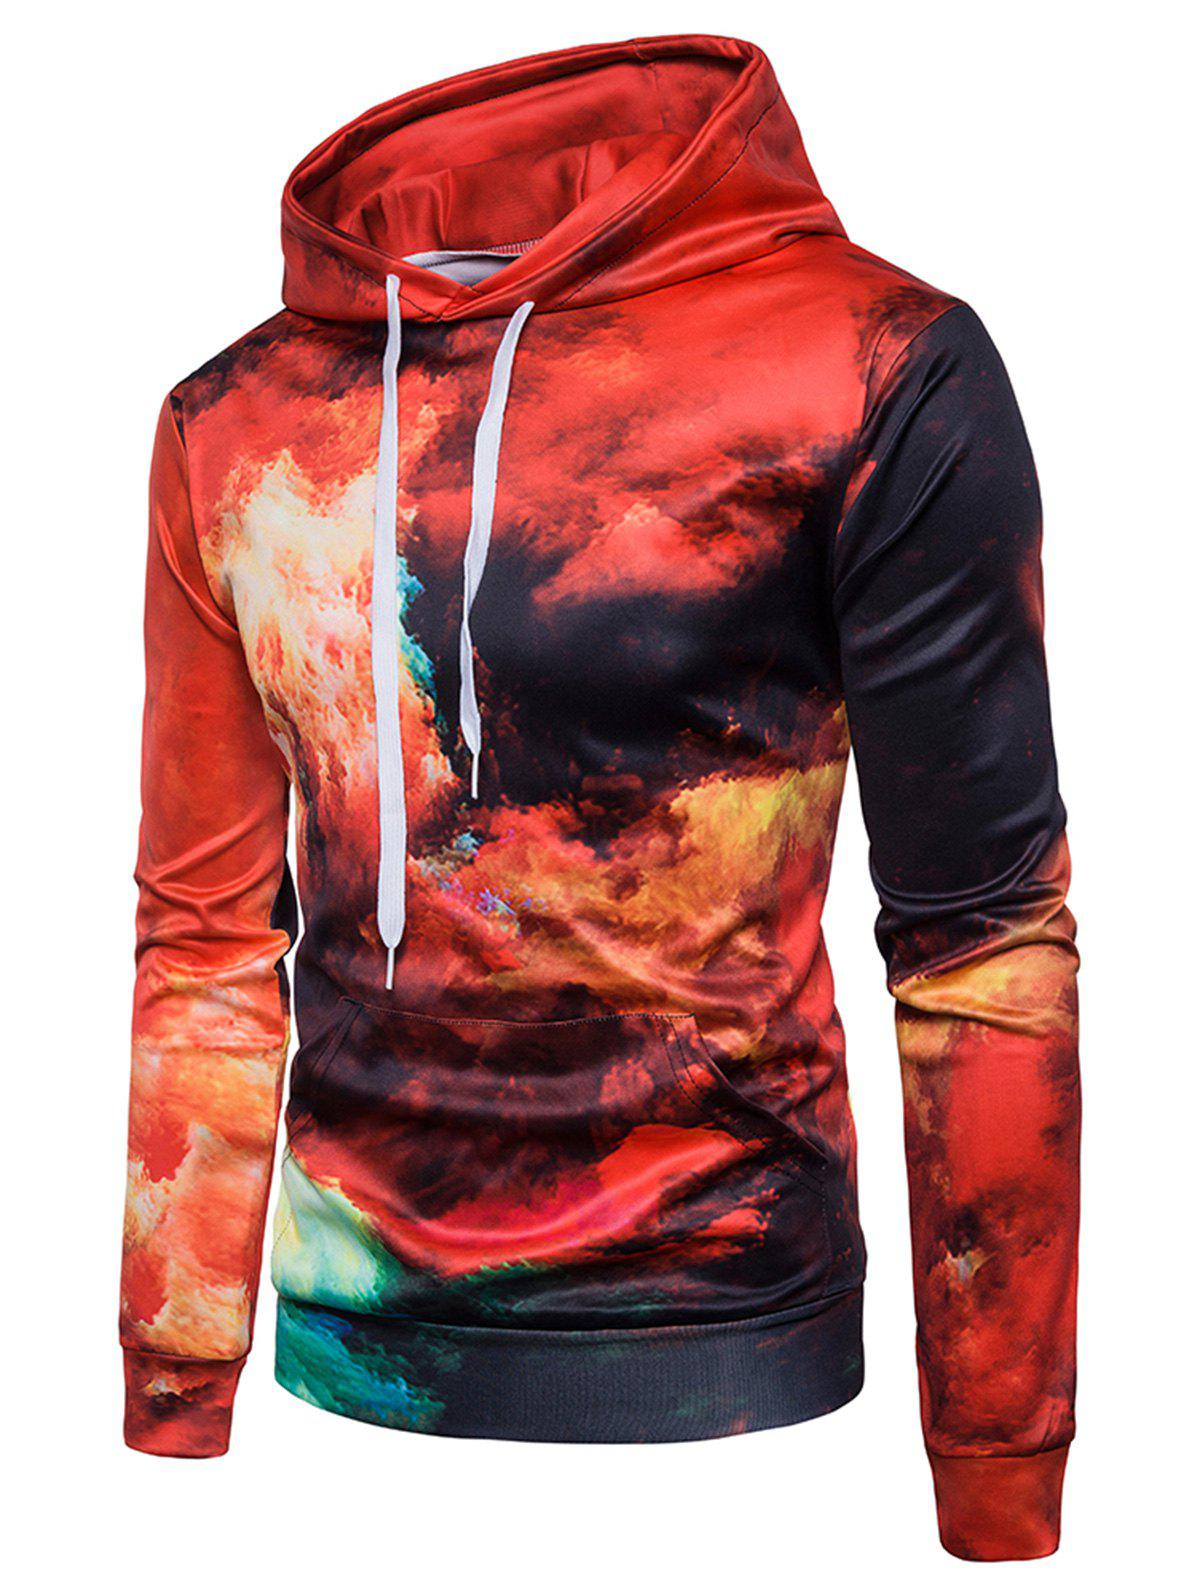 Flame Print Kangaroo Pocket Hoodie - COLORMIX 2XL